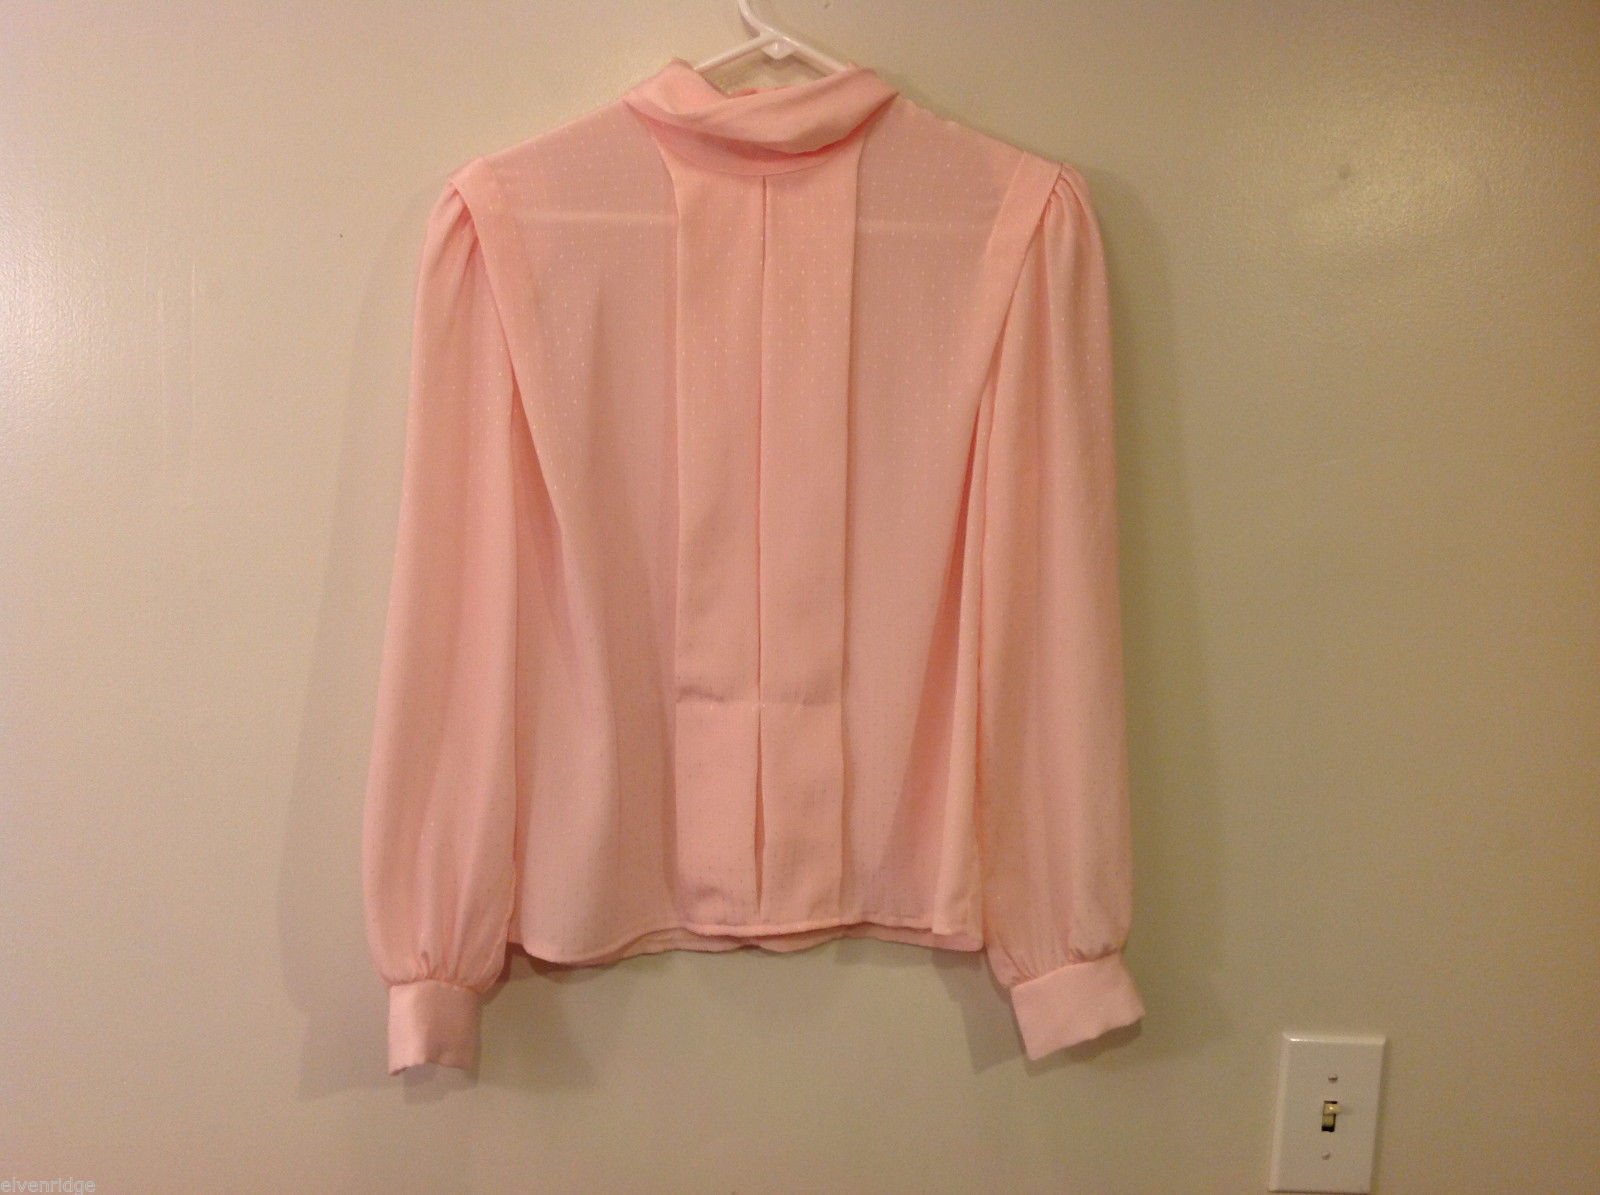 Jonathan Martin Women's Size 6 Cowl Neck Blouse Peach Pink Sheer Plumetis Crepe